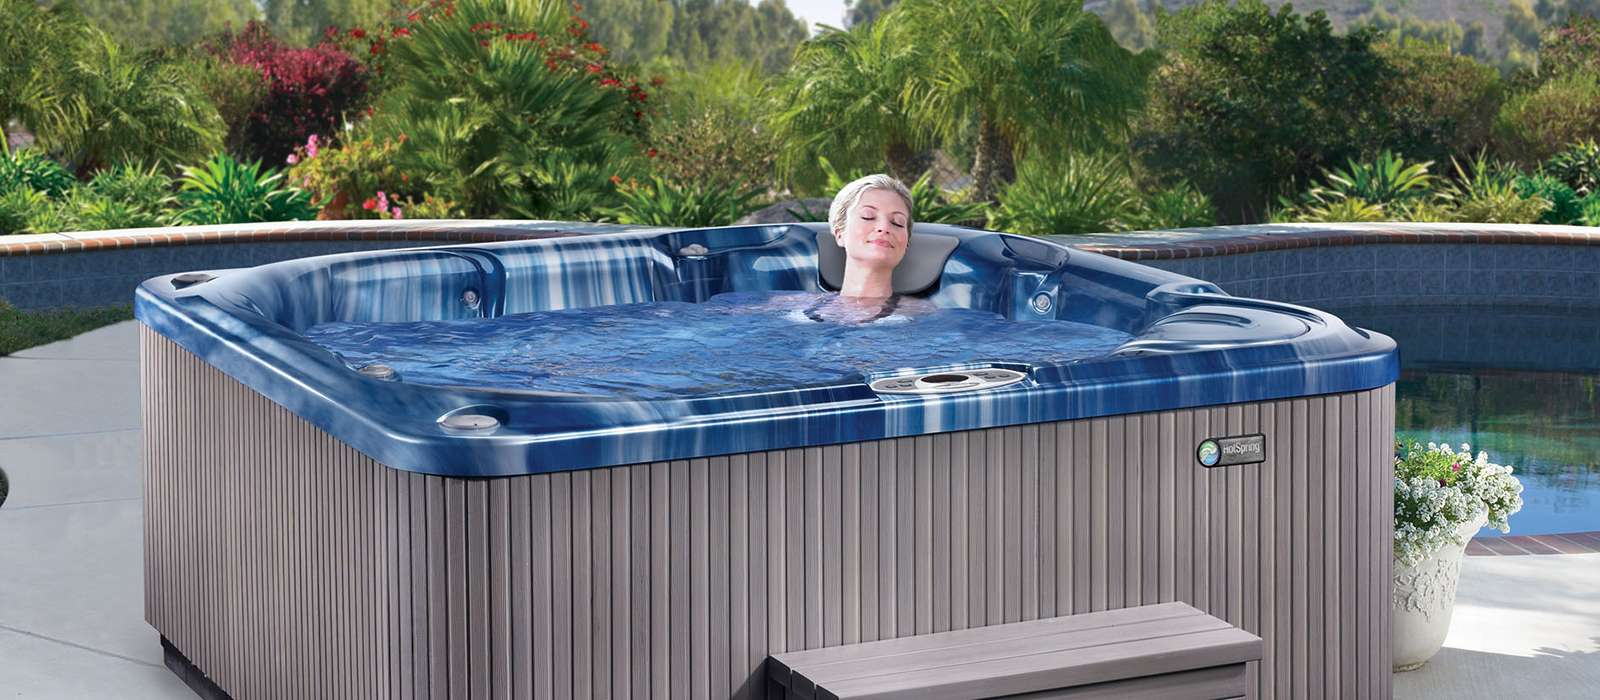 Style meets features in the Bolt hot tub, with a sleek cabinet profile, chrome-lined jets and a spa shell available in Tuscan Sun, Champagne Opal, Pearl, Sterling Marble and Ocean Wave.